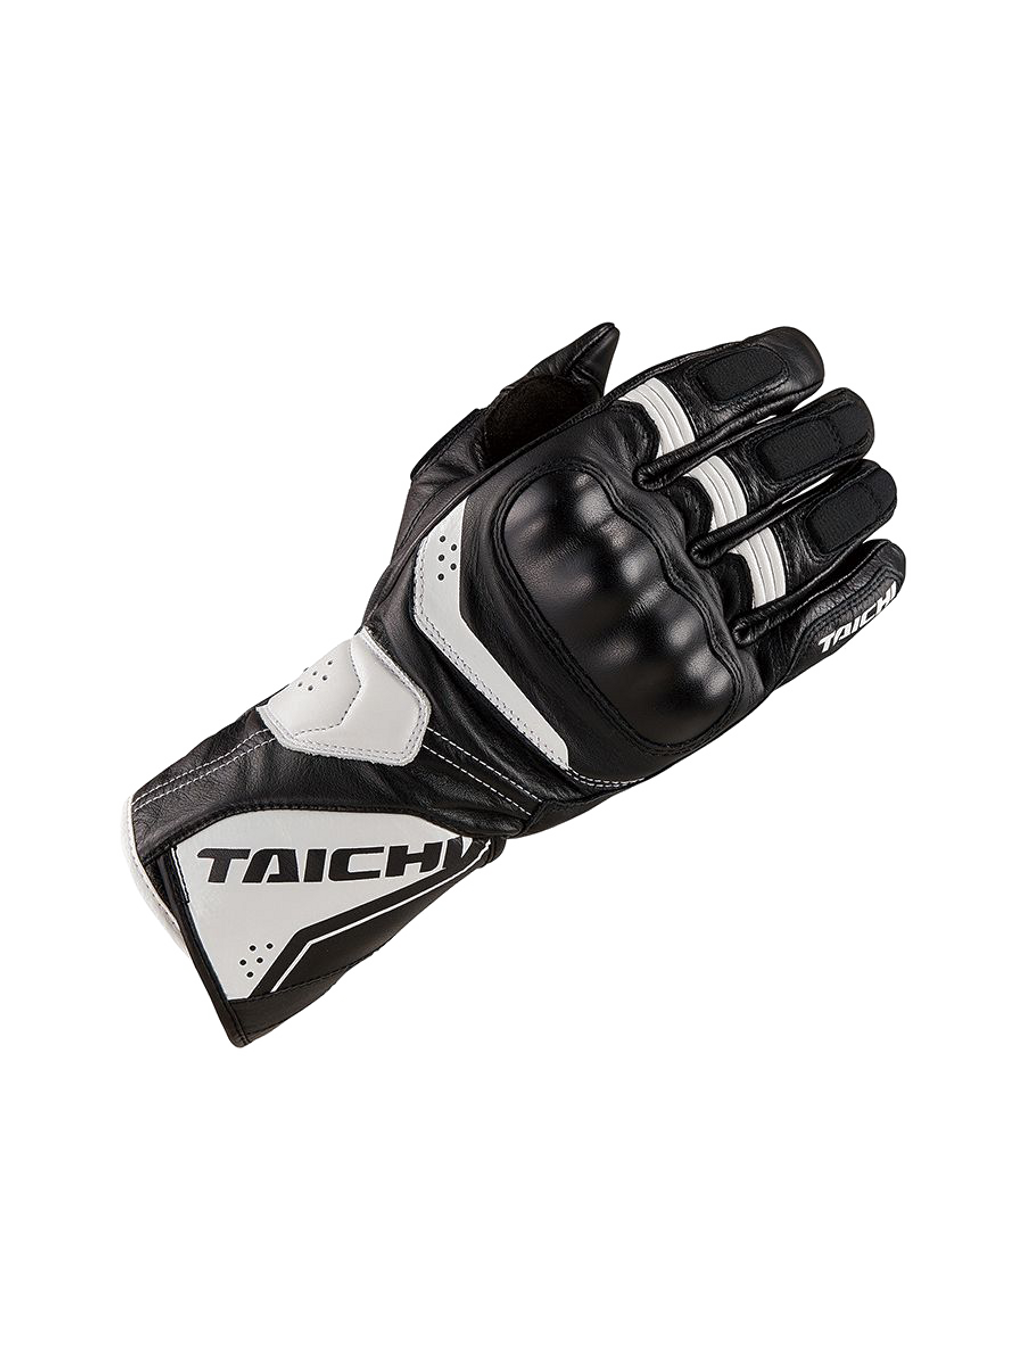 74 RS TAICHI RST453 CORSA LEATHER GLOVE black white (1).png